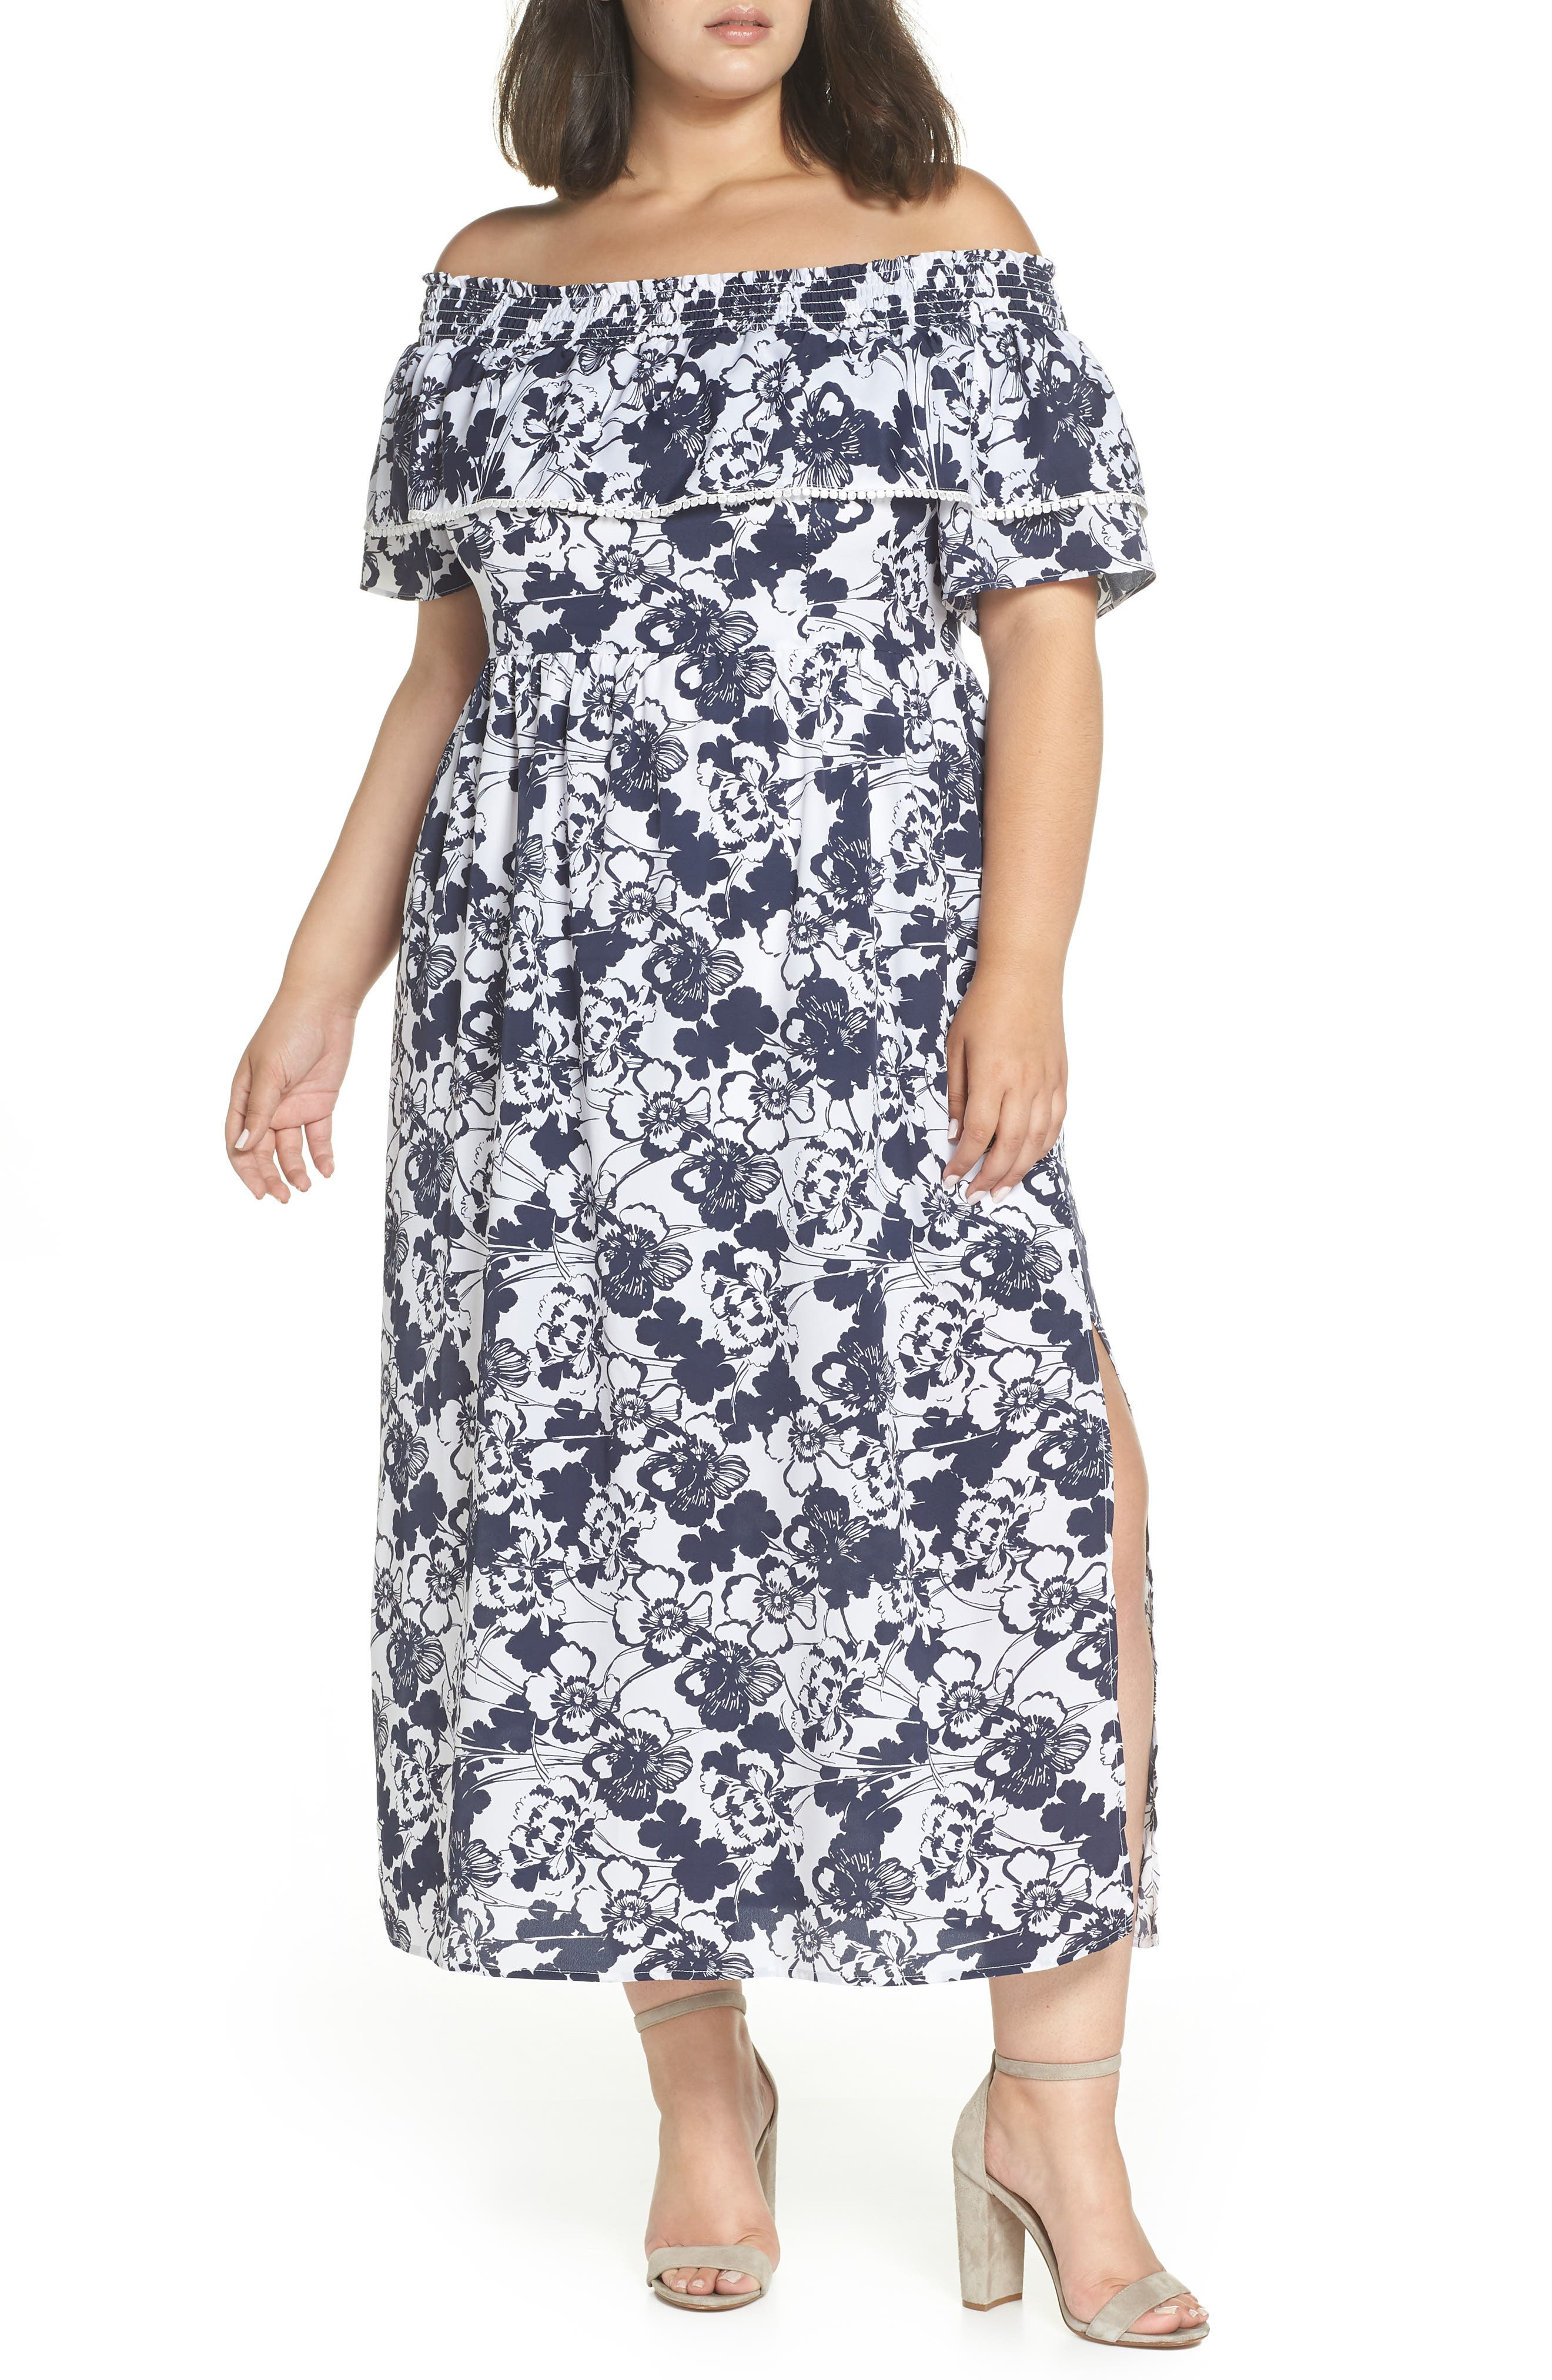 Off the Shoulder Ruffle Maxi Dress,                             Alternate thumbnail 2, color,                             Navy Ivory Floral Print